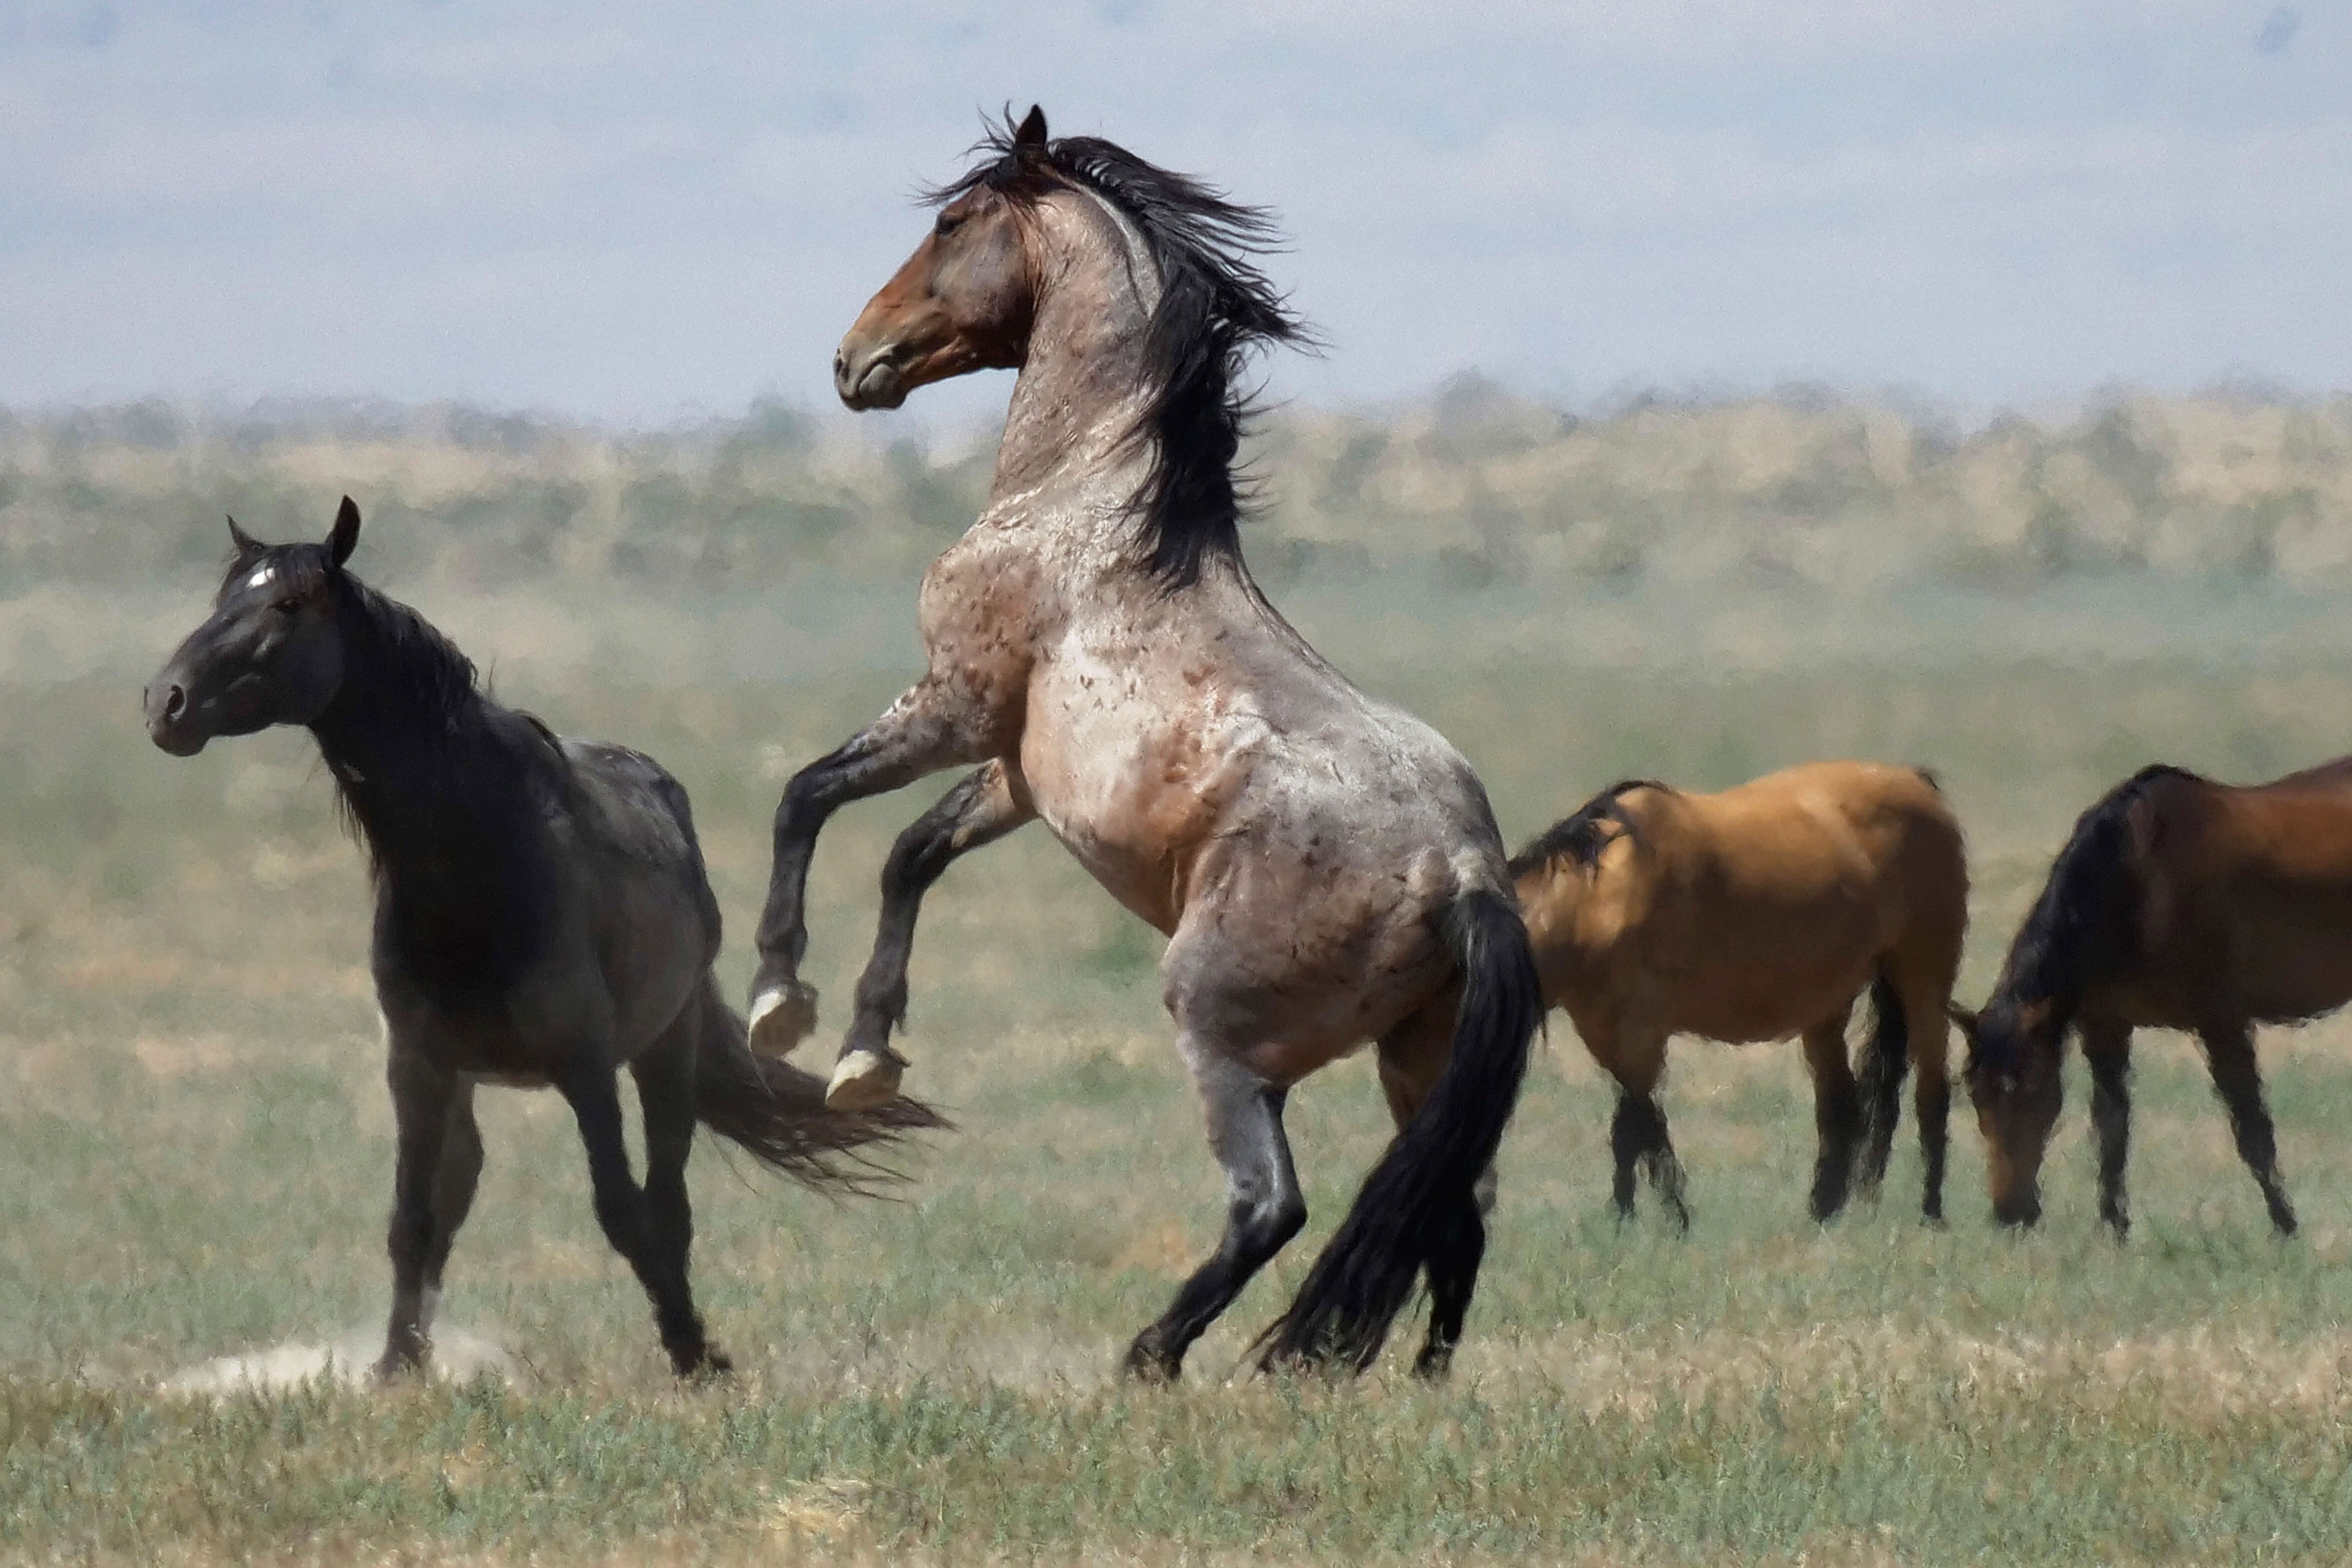 Lethal Measures Are Off The Table For Controlling The West S Wild Horse Herds Colorado Public Radio